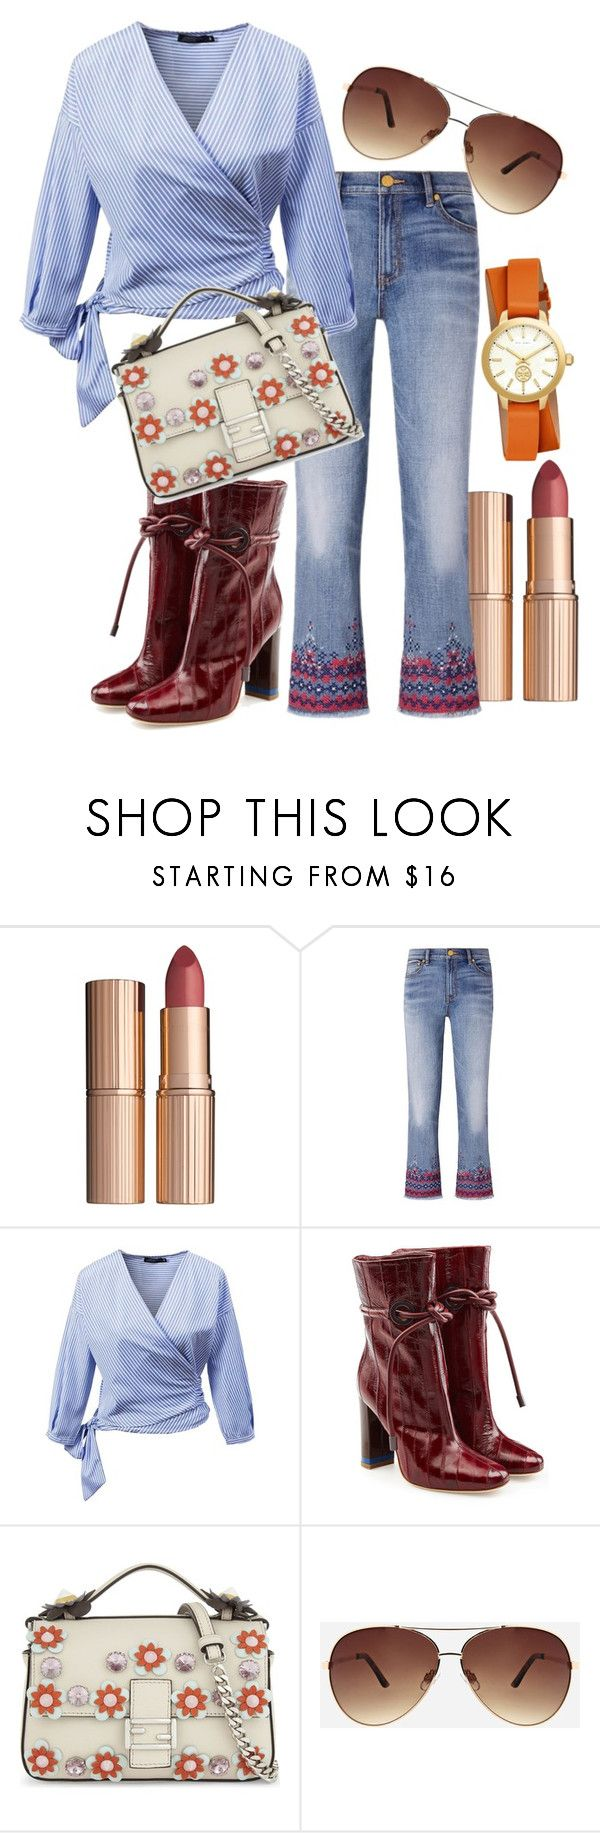 """""""Quick Outfit"""" by stylemaven2 ❤ liked on Polyvore featuring John Lewis, Tory Burch, Malone Souliers, Fendi, Ashley Stewart and quickdress"""